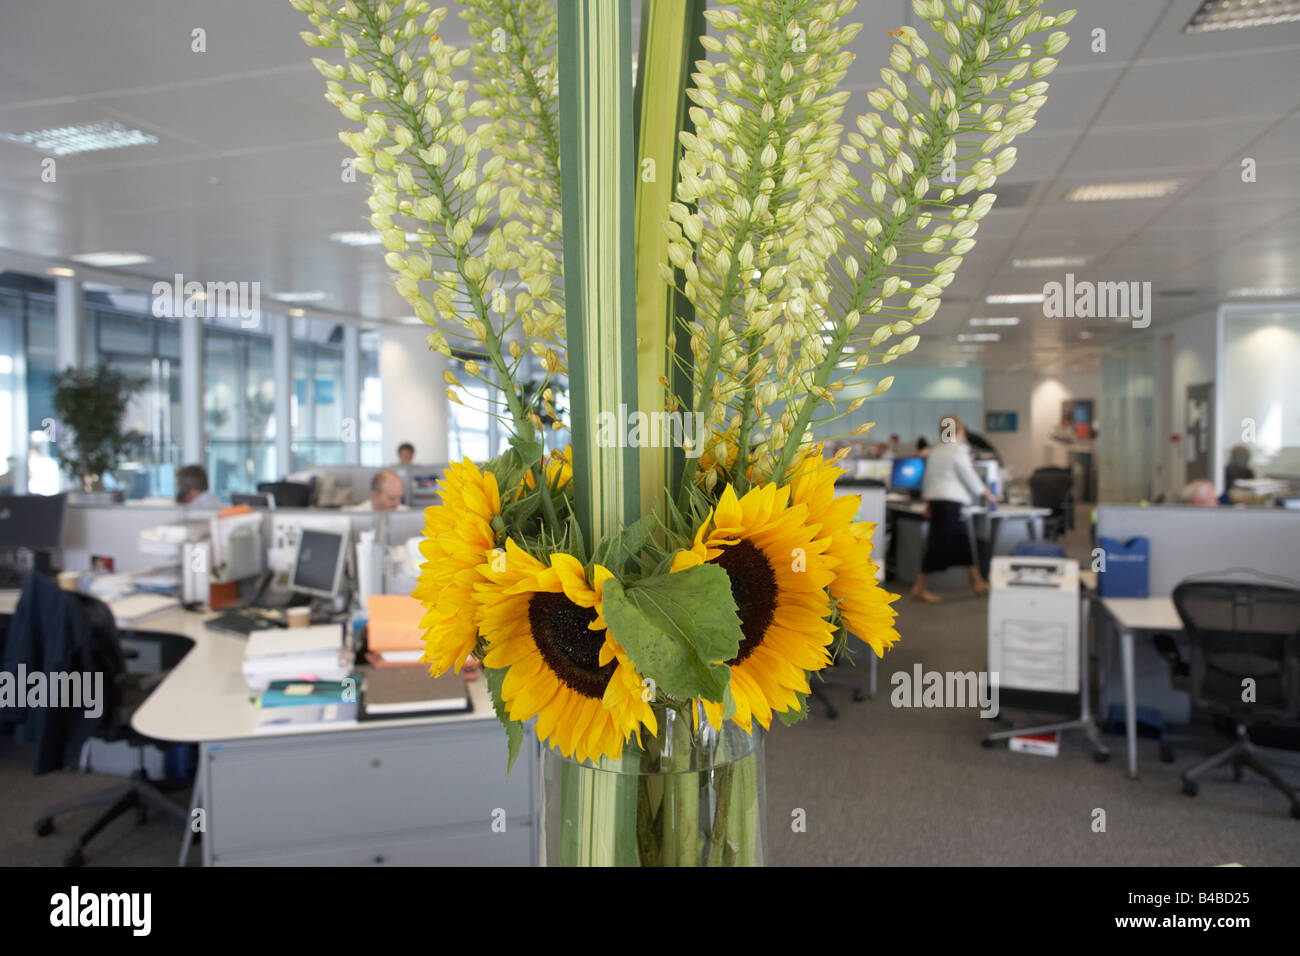 Yellow sunflowers brighten up otherwise drab offices of an auditing company's European headquarters - Stock Image